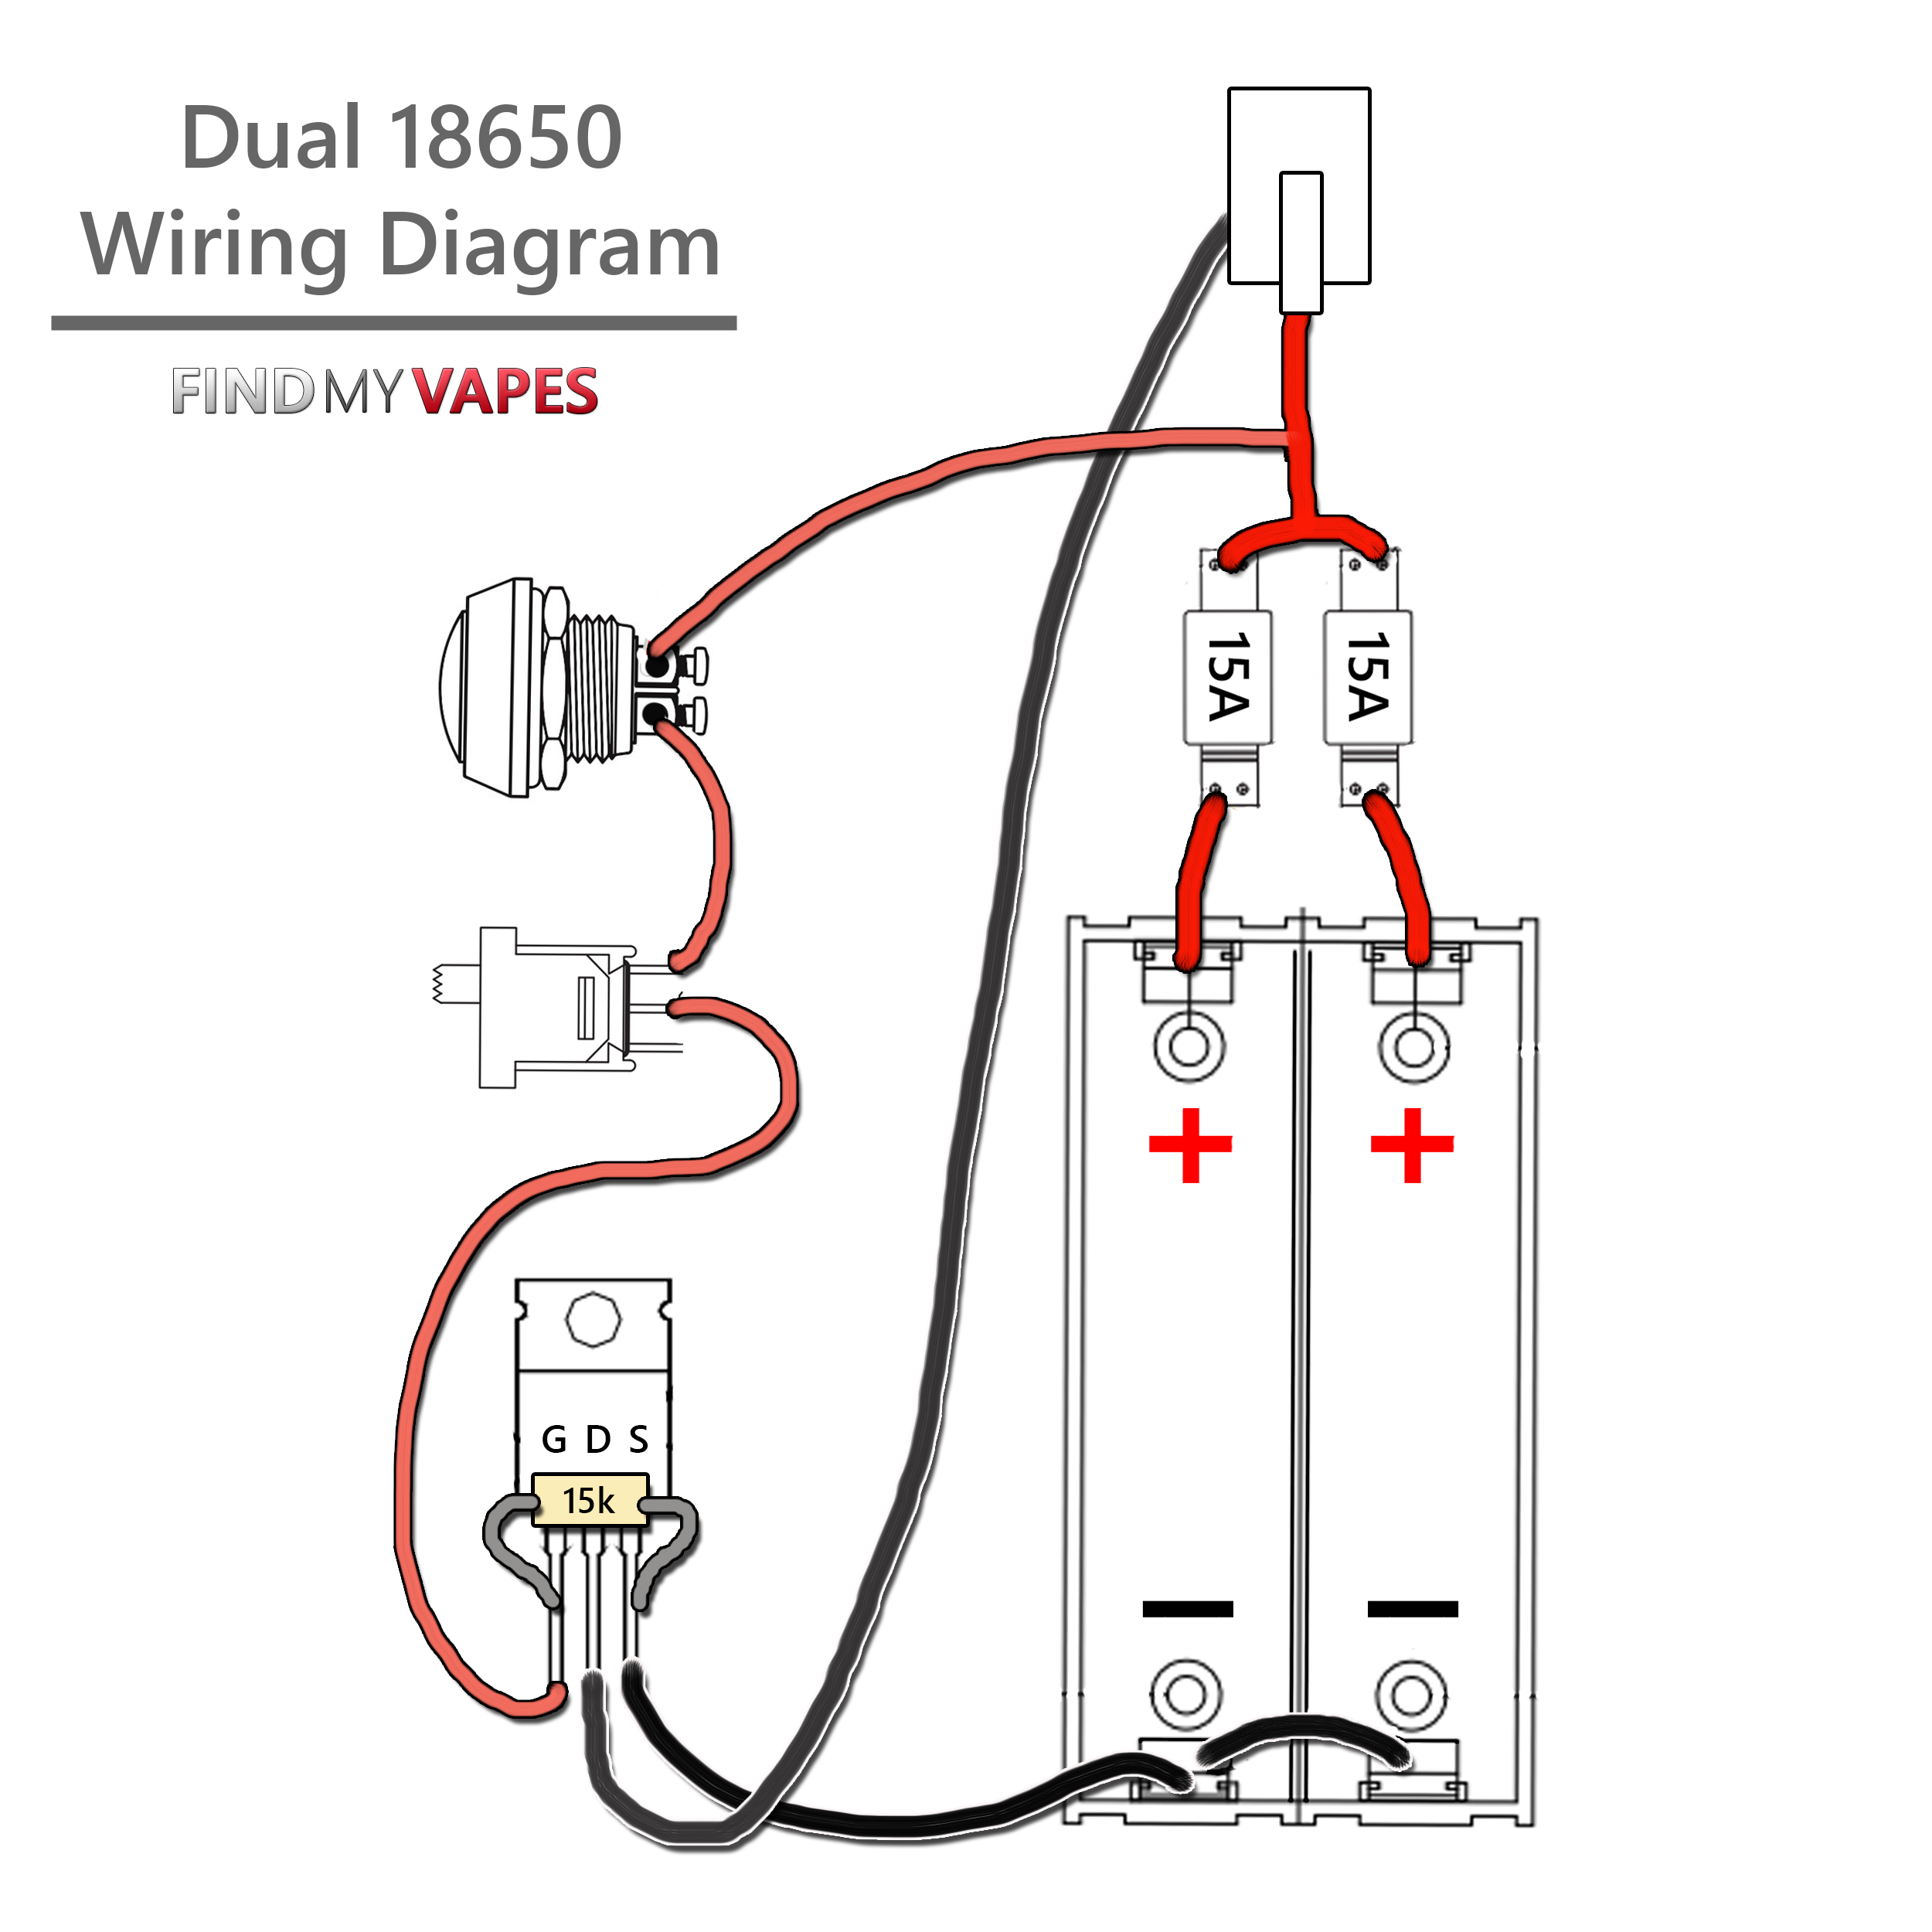 Unregulated Mod Box Wiring Diagram on dna box mod wiring, 18650 mos fet wiring, diy box mod wiring, regulated box mod wiring, switch box mod wiring, power box wiring,